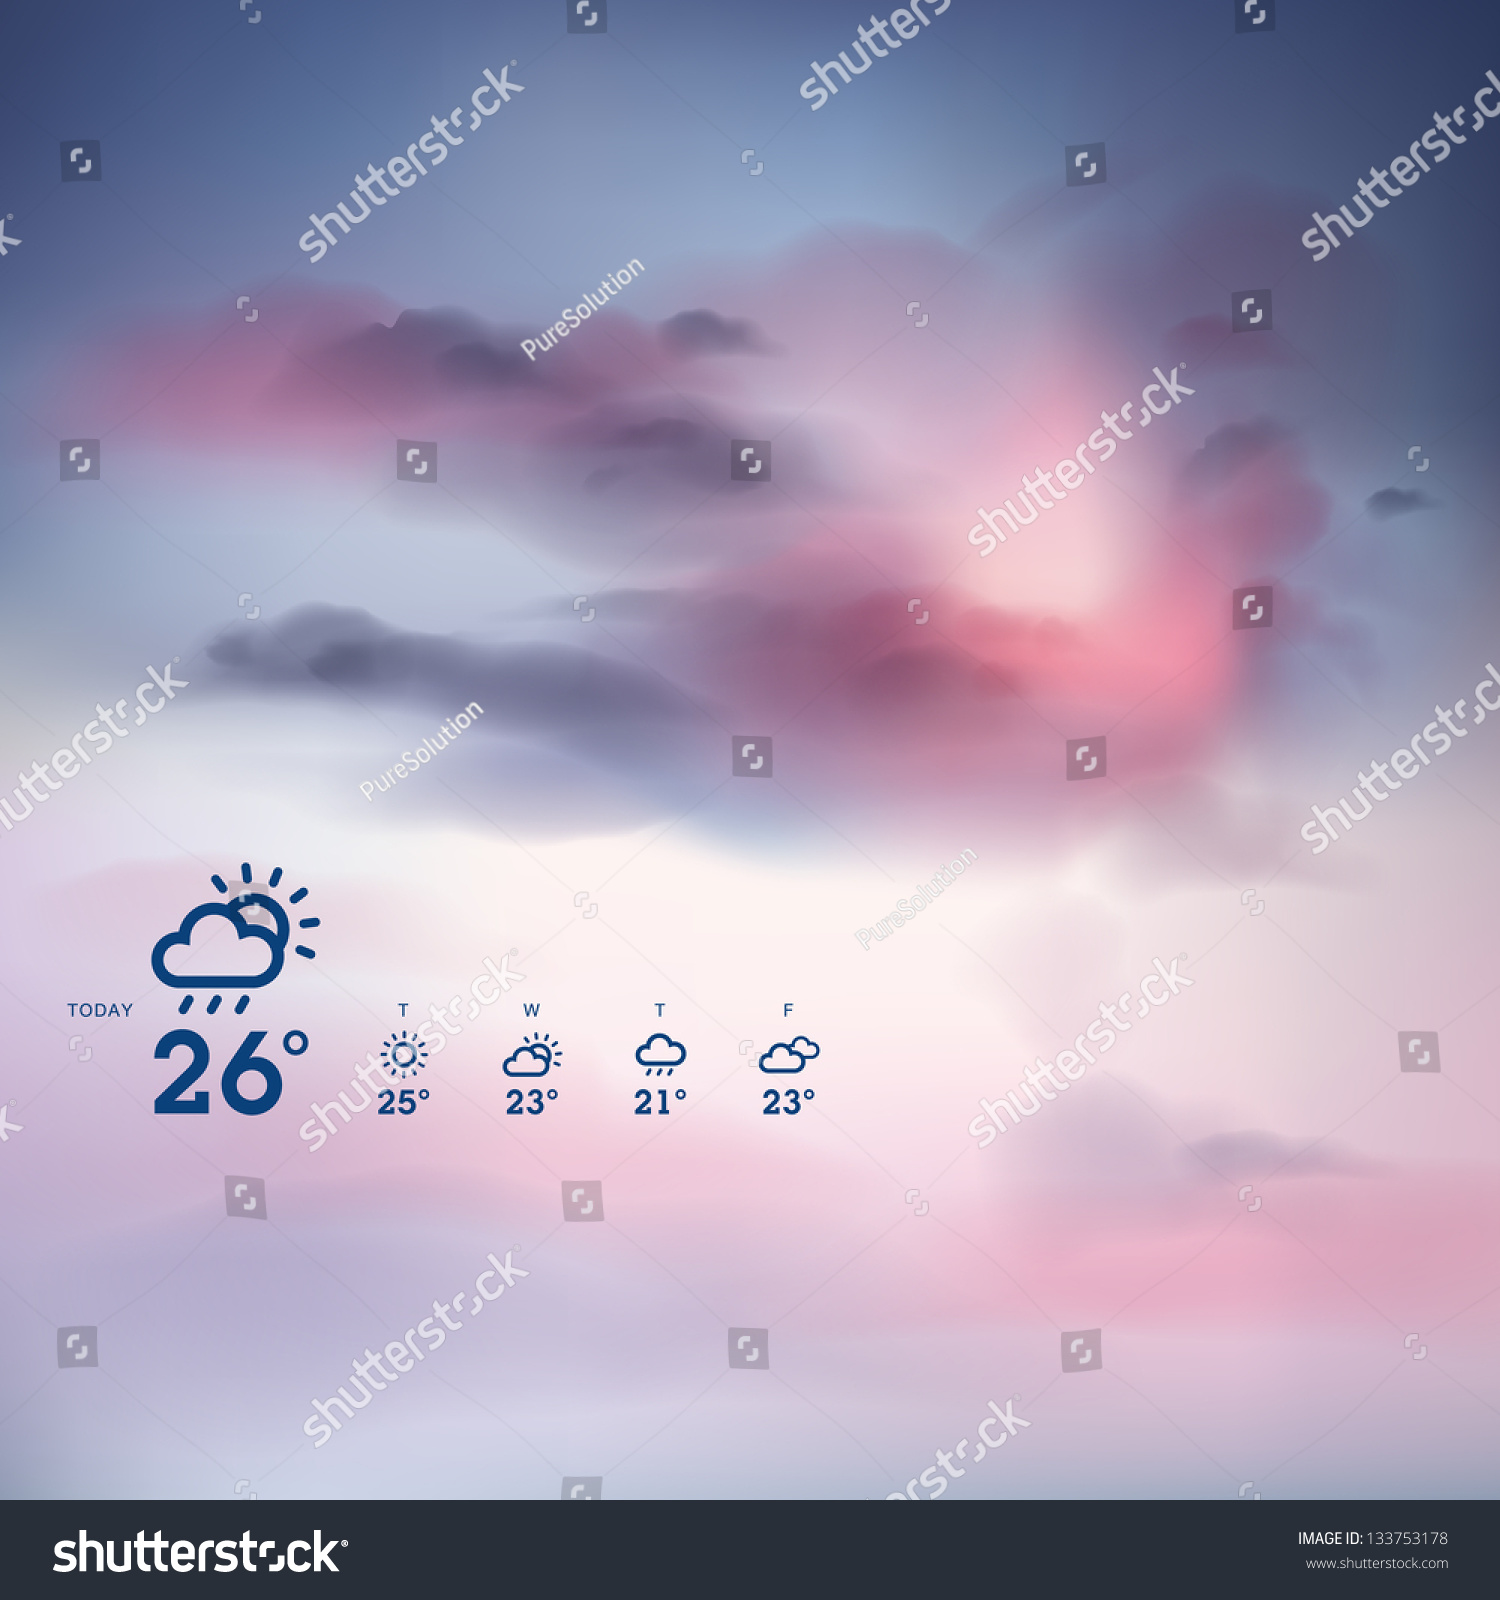 Weather Forecast Template Sunset Theme Background Stock Vector ...